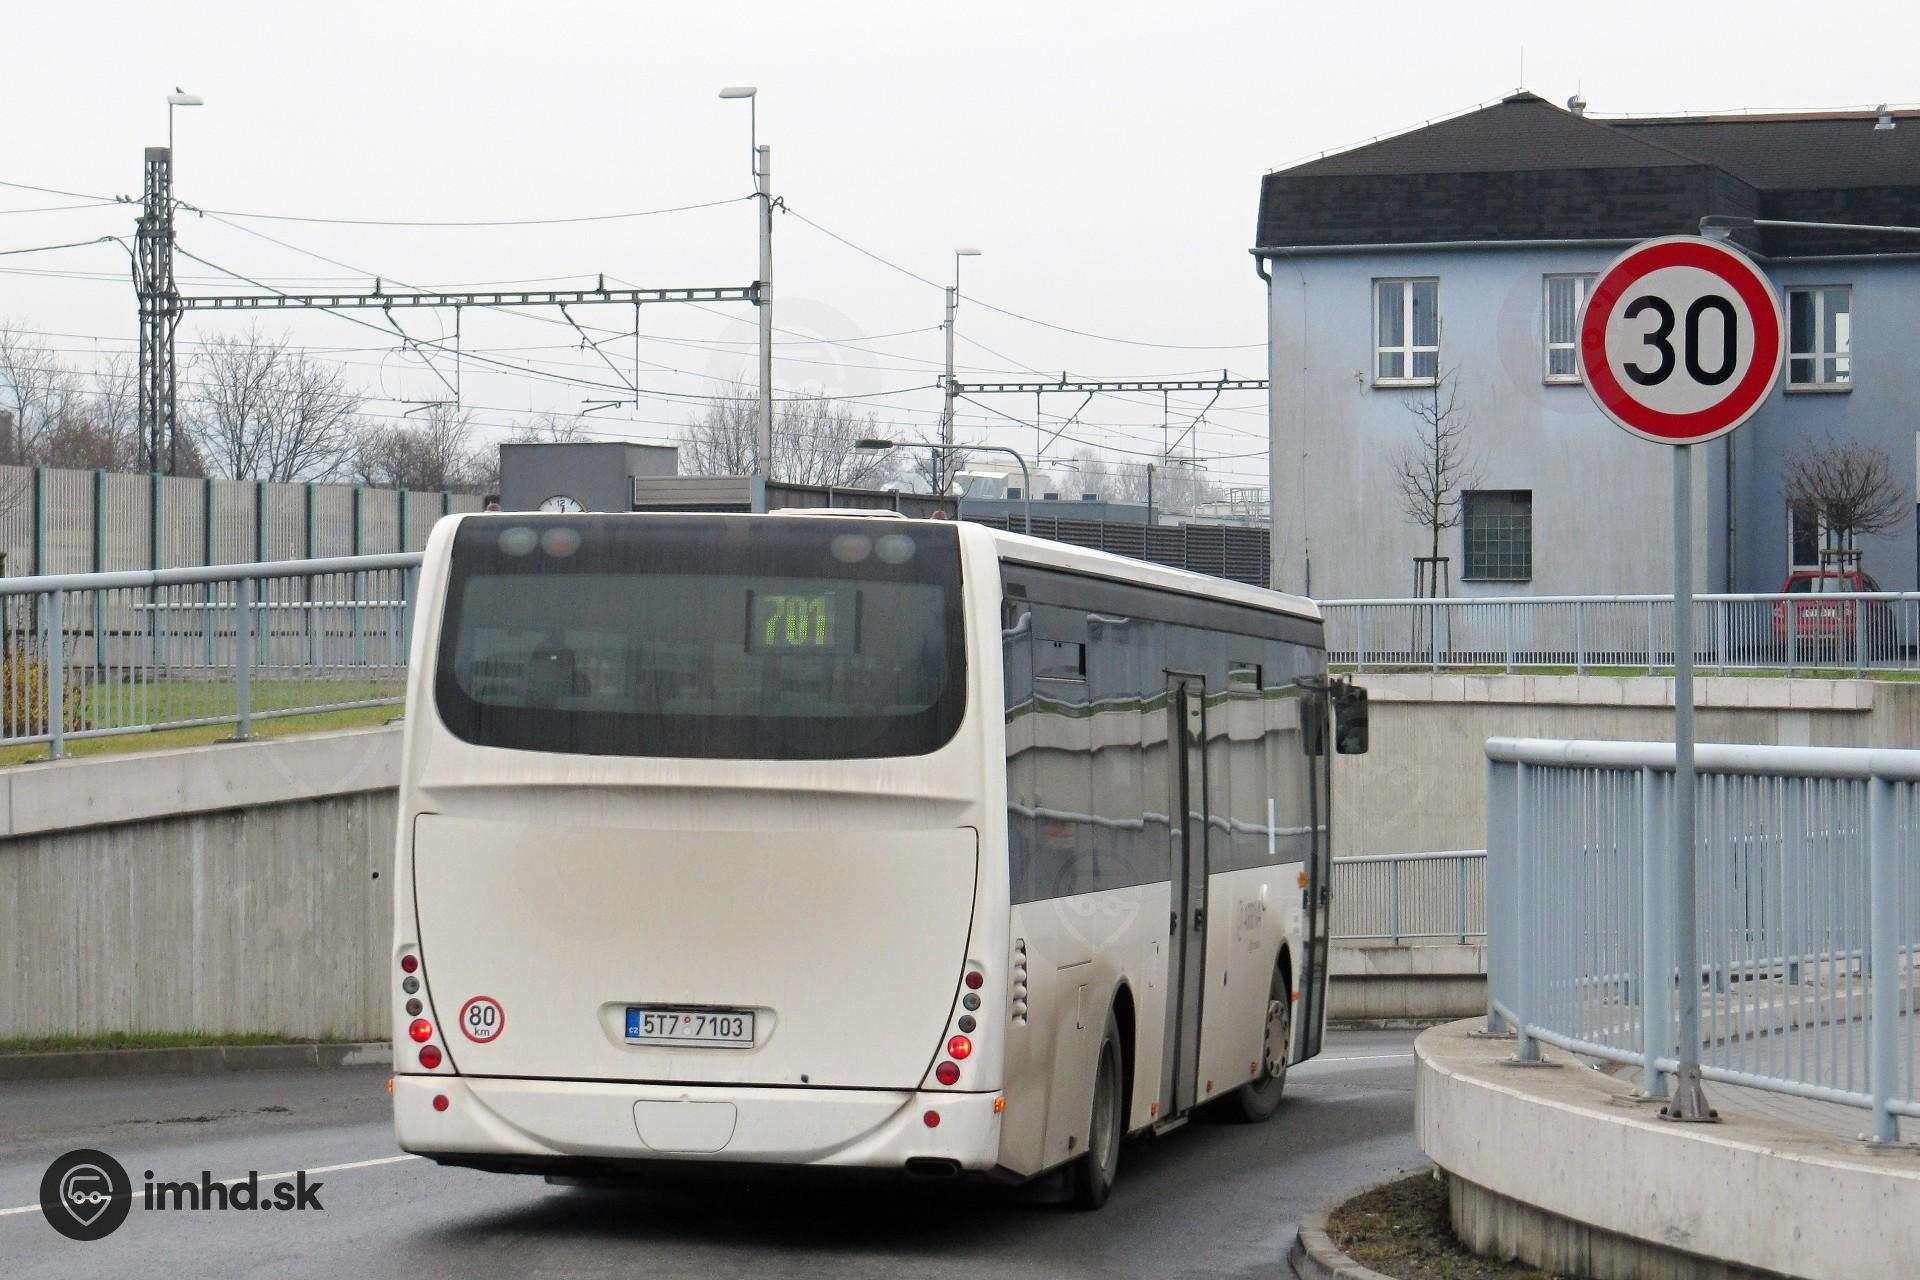 5T7 7103, route 701, Lyžbice • imhd sk Slovakia and the world